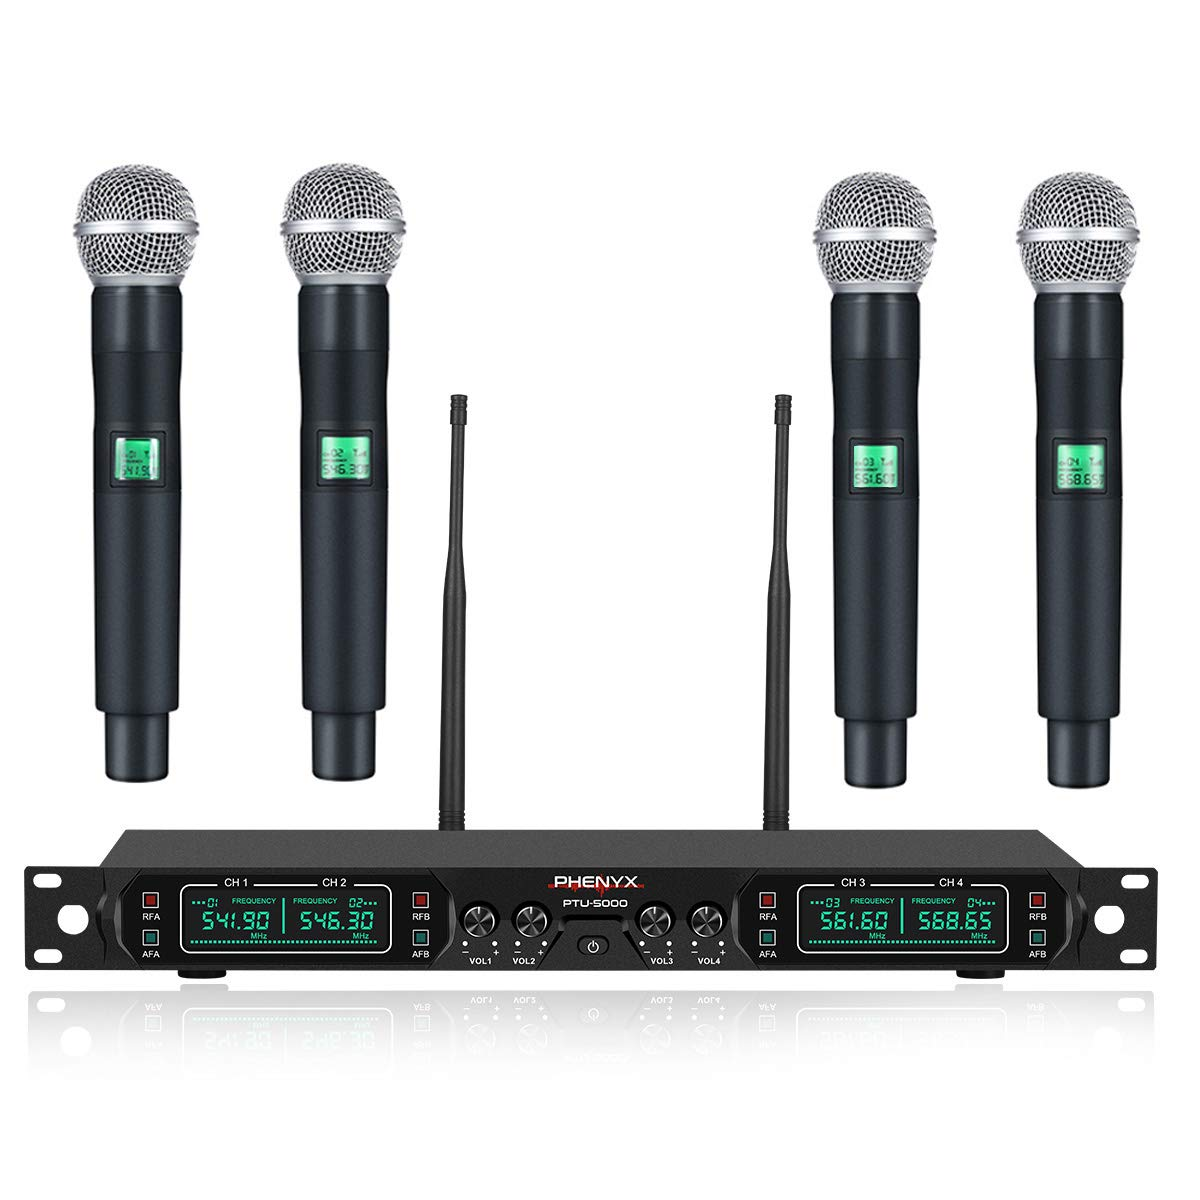 Wireless Microphone System, Phenyx Pro 4-Channel UHF Cordless Mic Set With Four Handheld Mics, All Metal Build, Fixed Frequency, Long Range 260ft, Ideal for Church,Karaoke,Weddings, Events (PTU-5000A) by Phenyx Pro